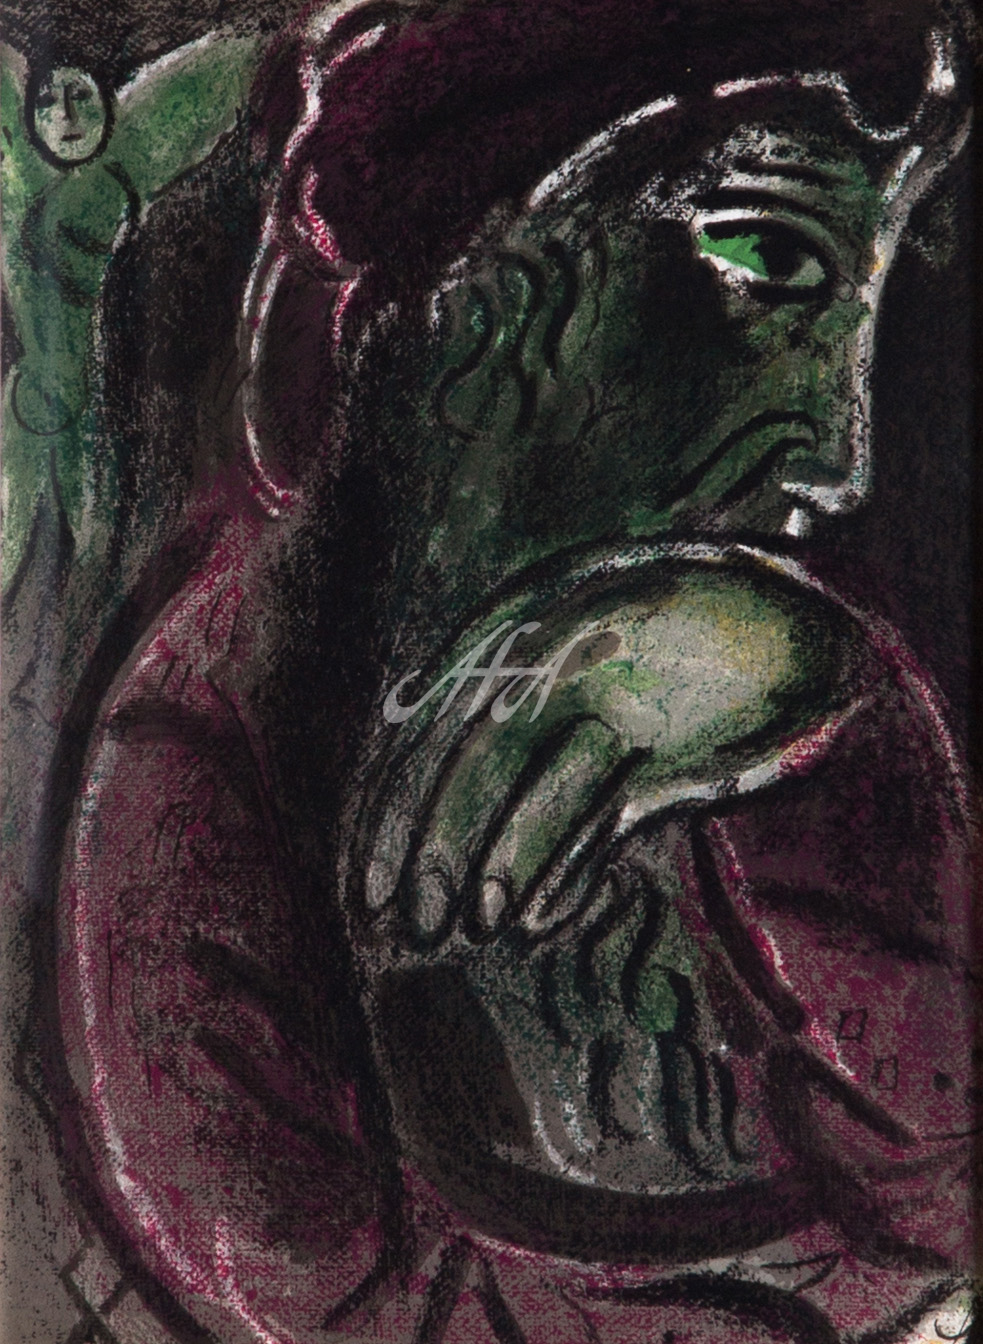 Marc_Chagall_figurative6 LoRes watermark.jpg